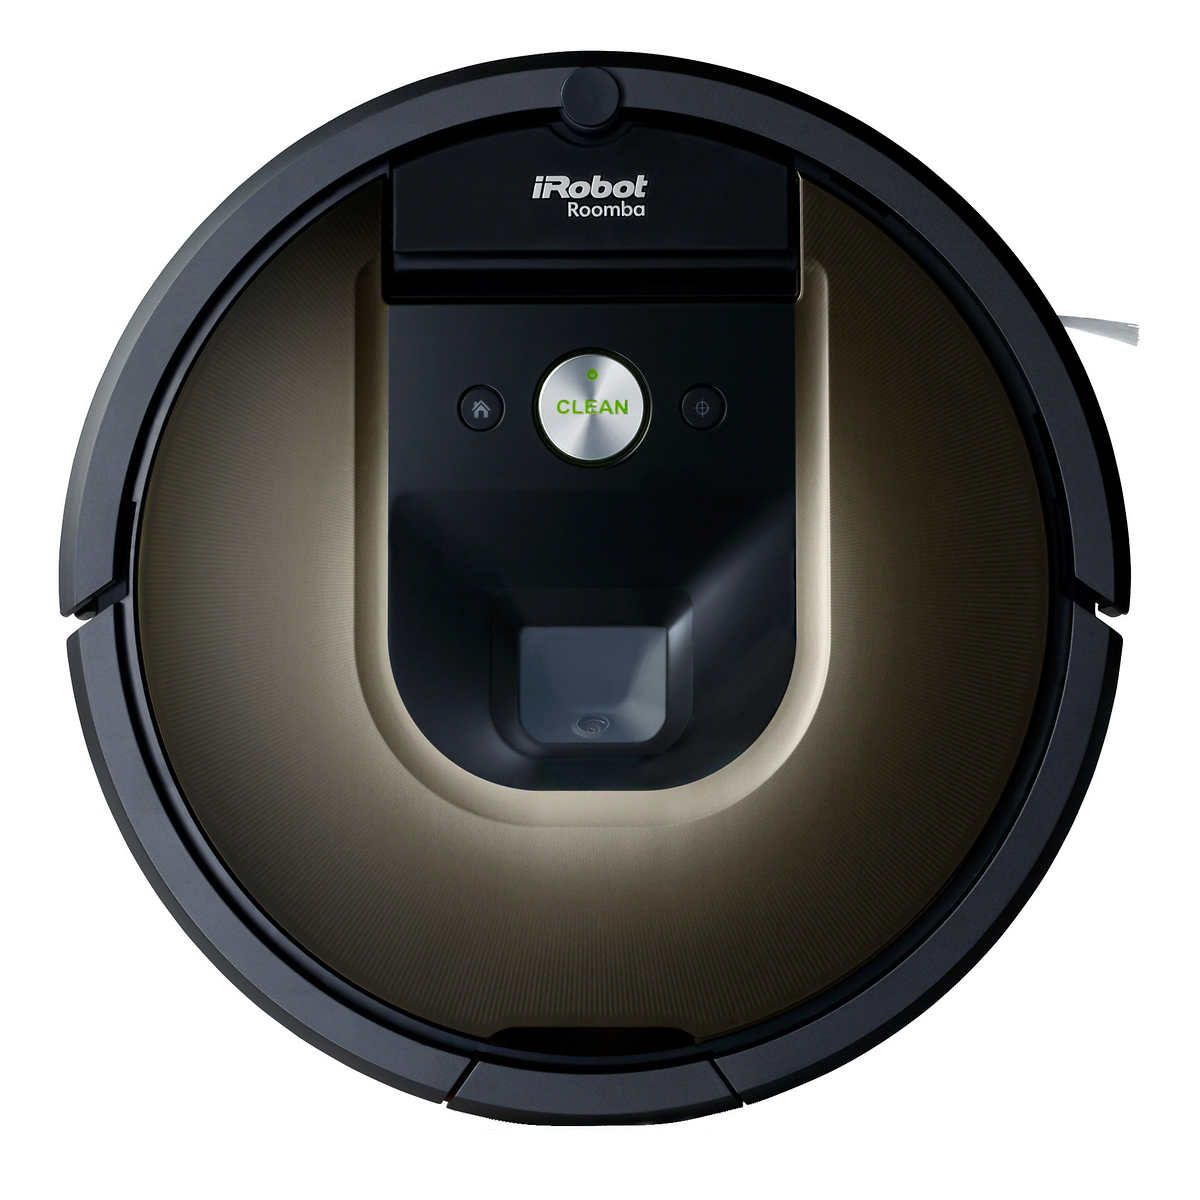 iRobot Roomba 980 Vacuum Cleaning Robot (With images